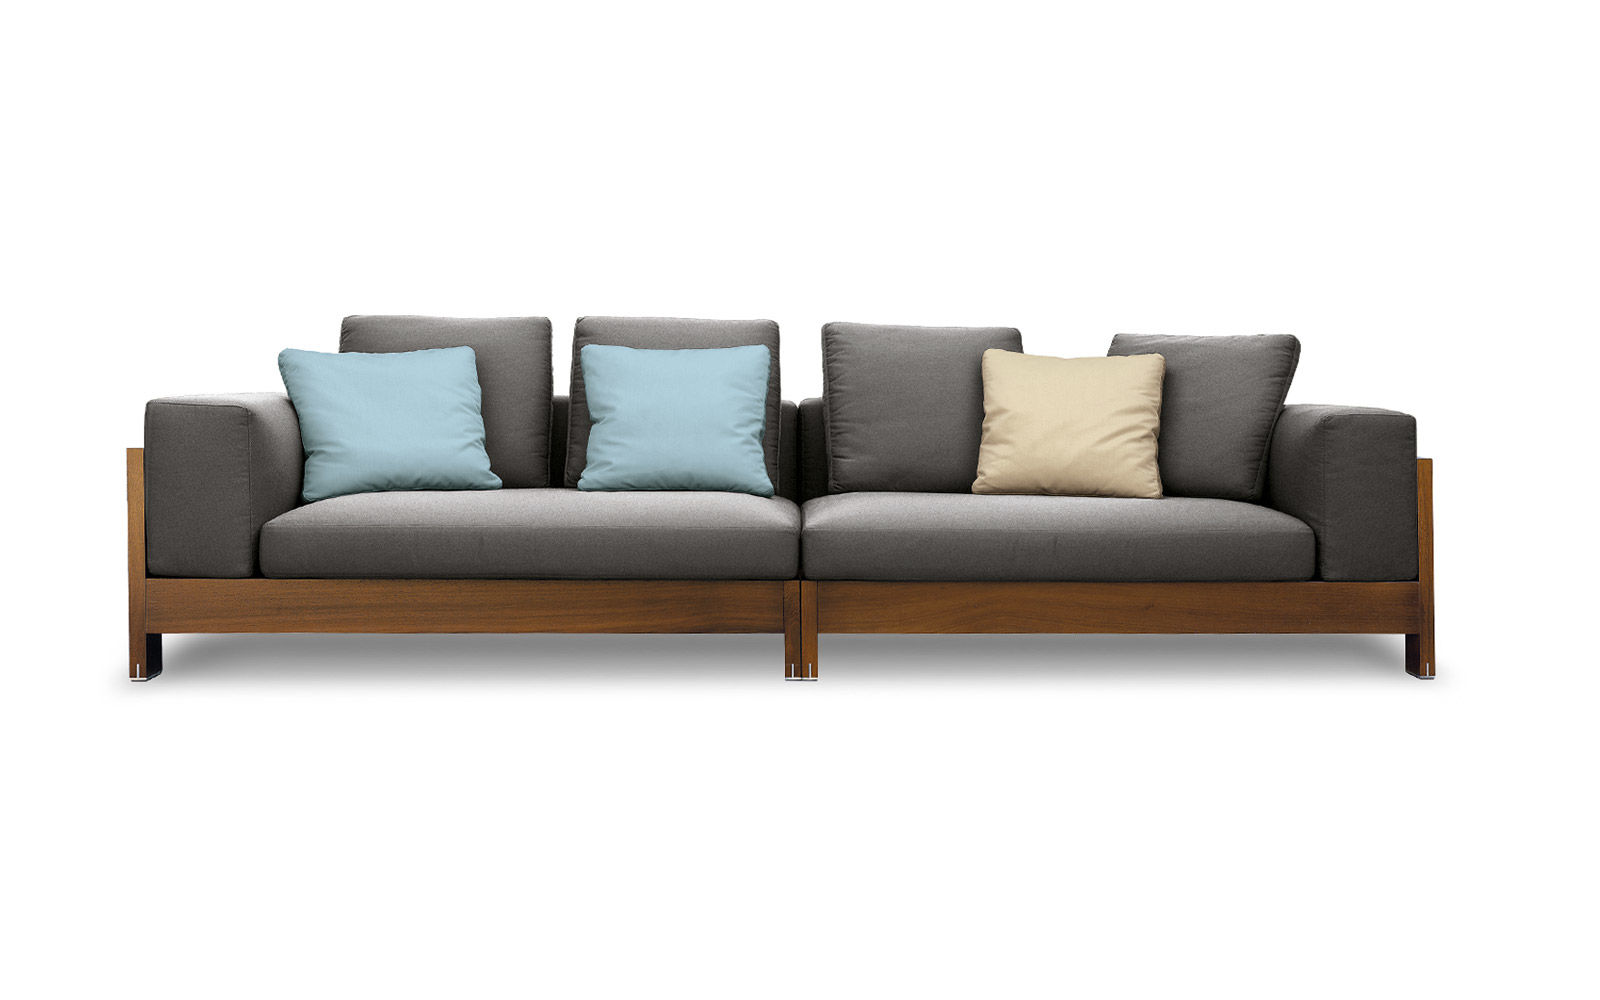 Minotti Sofa Bed 28 Images Andersen Bed Beds From Minotti Architonic Minotti Sofa Price